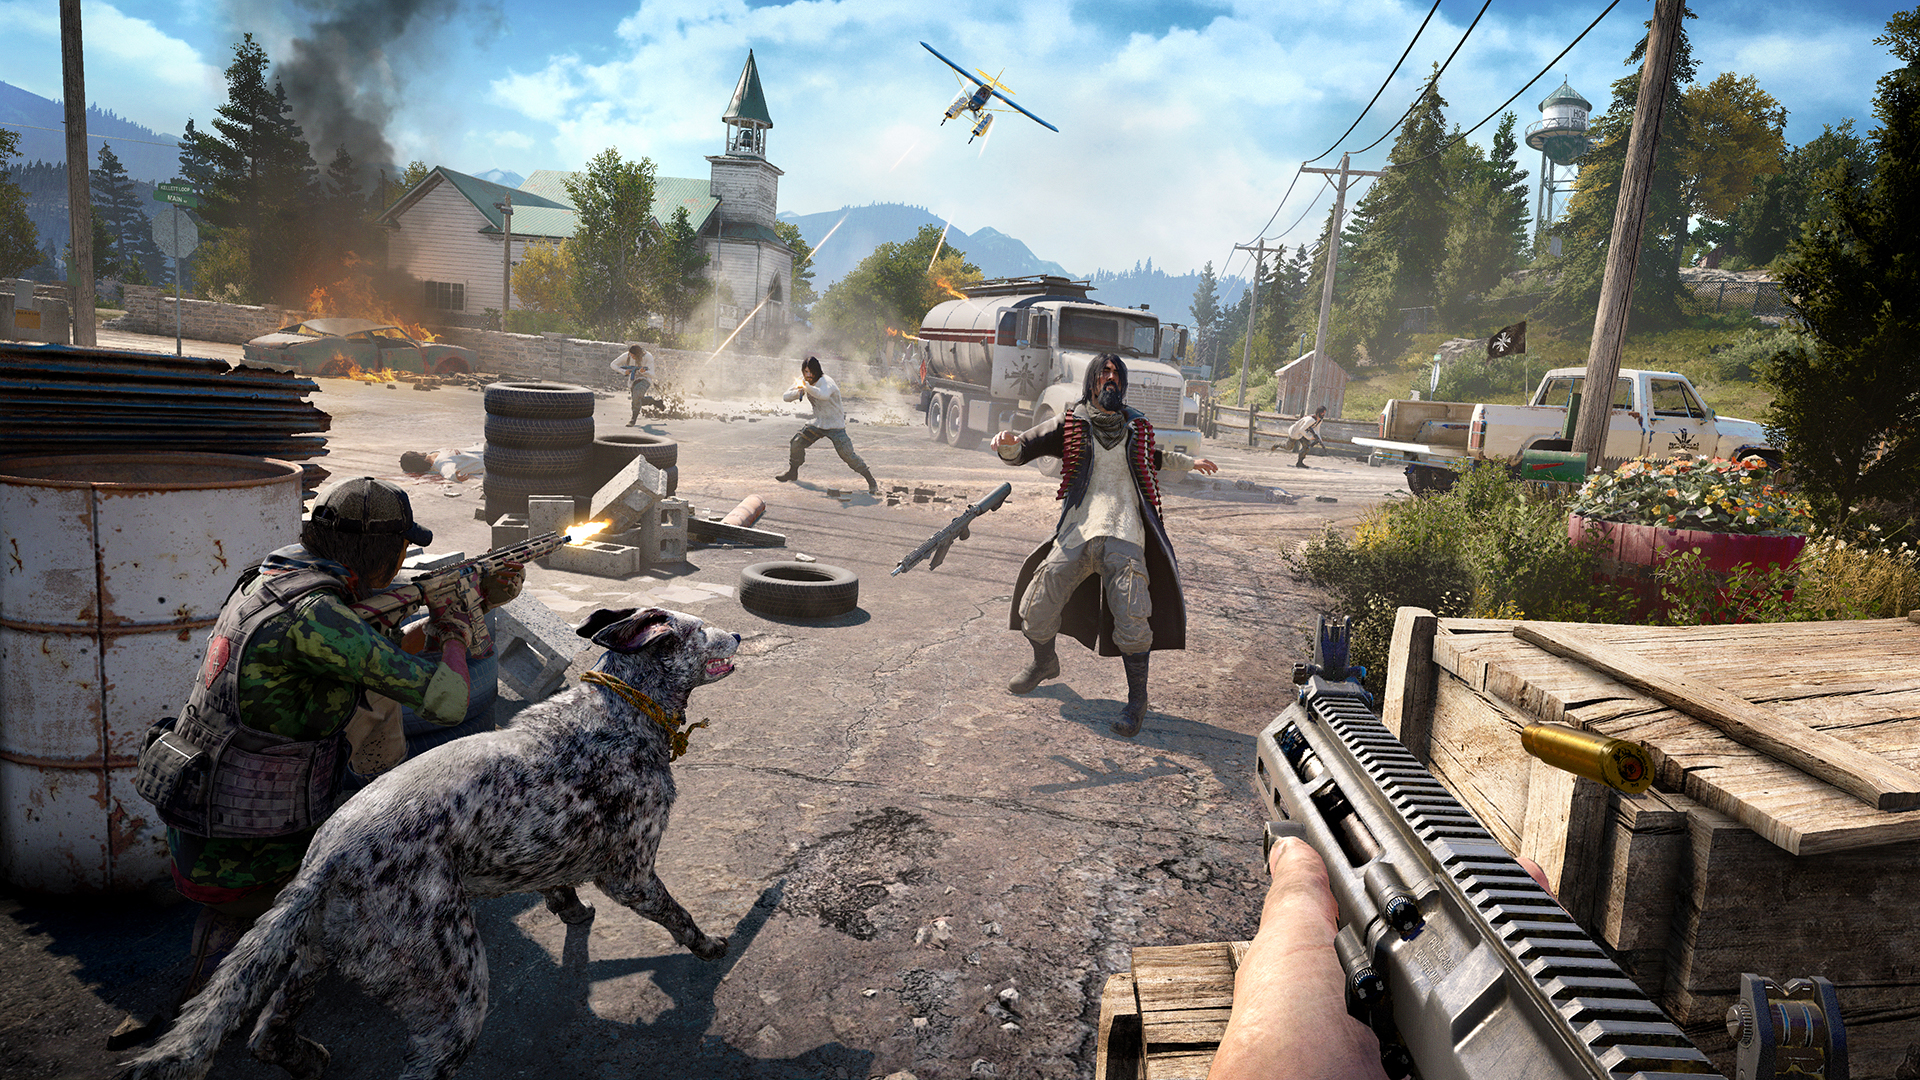 Gaming: Far Cry 5 - The Intel Core i9-9980XE CPU Review